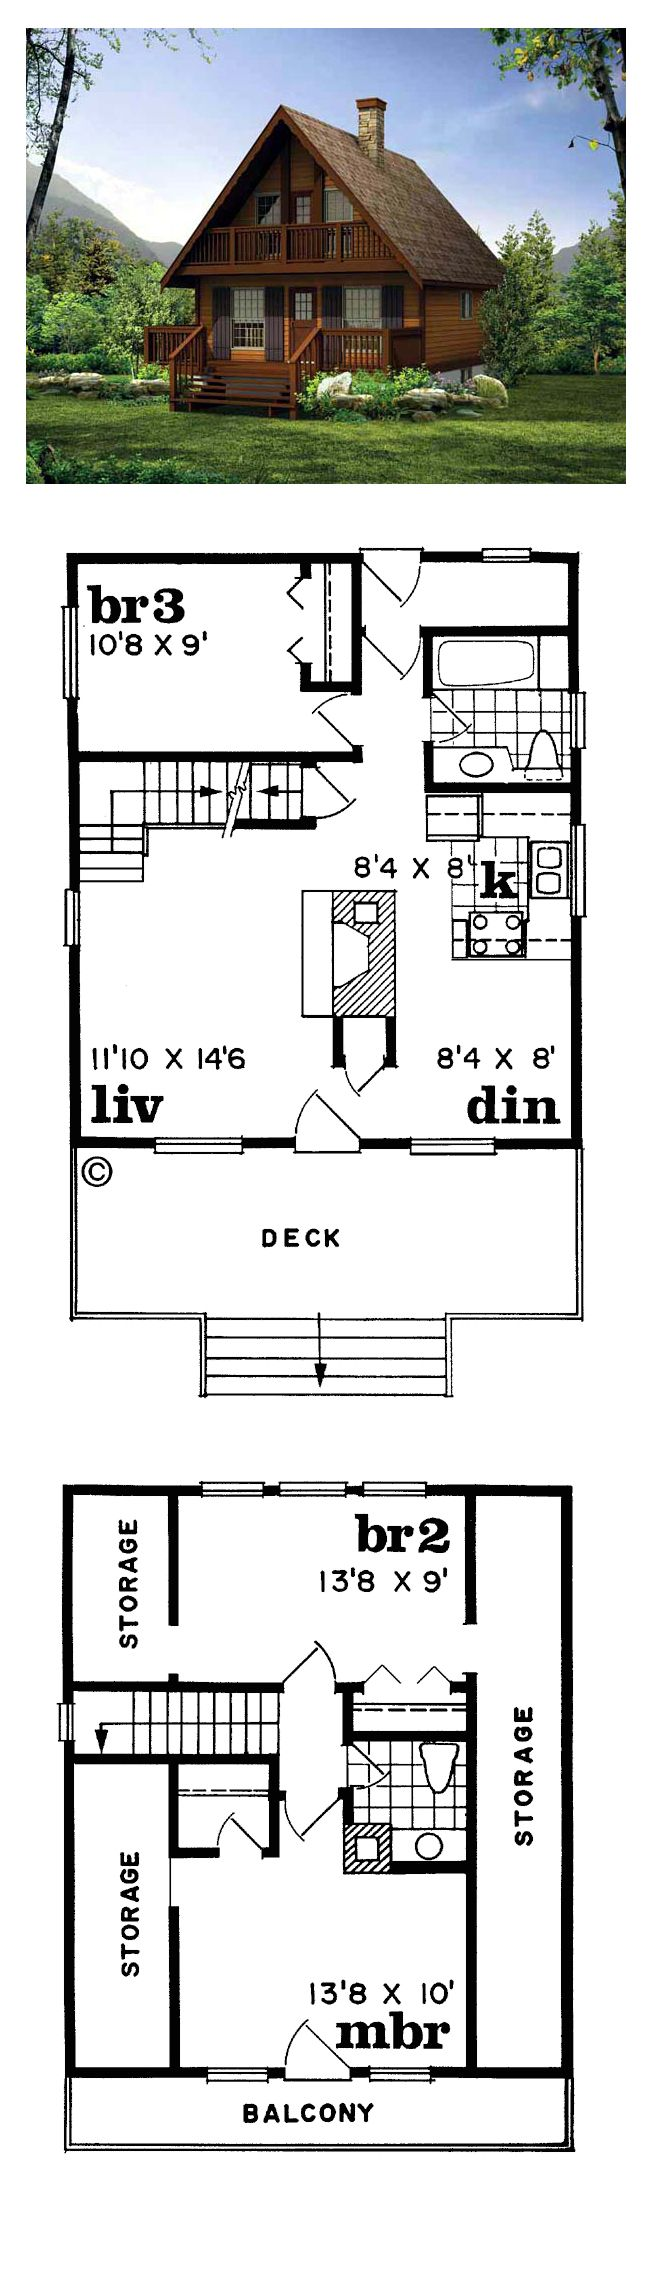 Narrow Lot Home Plan 55007 | Total Living Area: 1073 sq. ft., 3 bedrooms and 1.5 bathrooms. #houseplans #narrowlothome